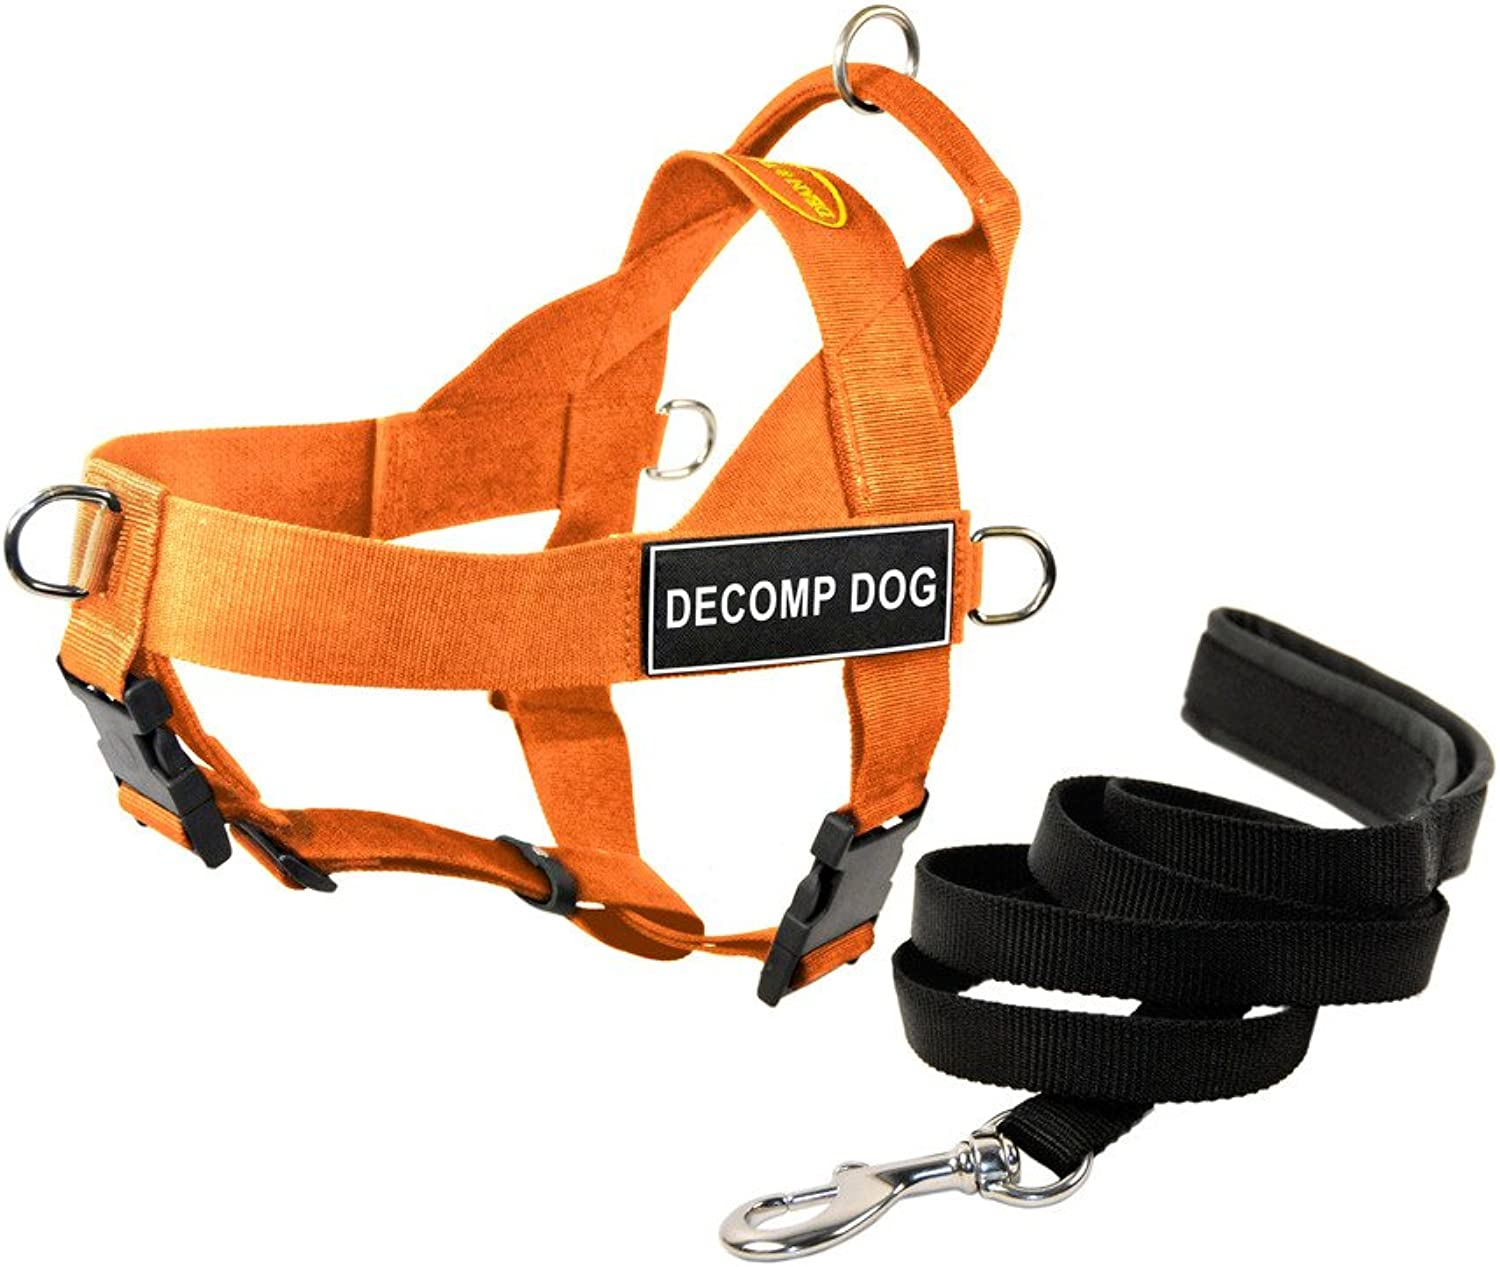 Dean & Tyler DT Universal No Pull Dog Harness with Decomp Dog Patches and Puppy Leash, orange, XLarge